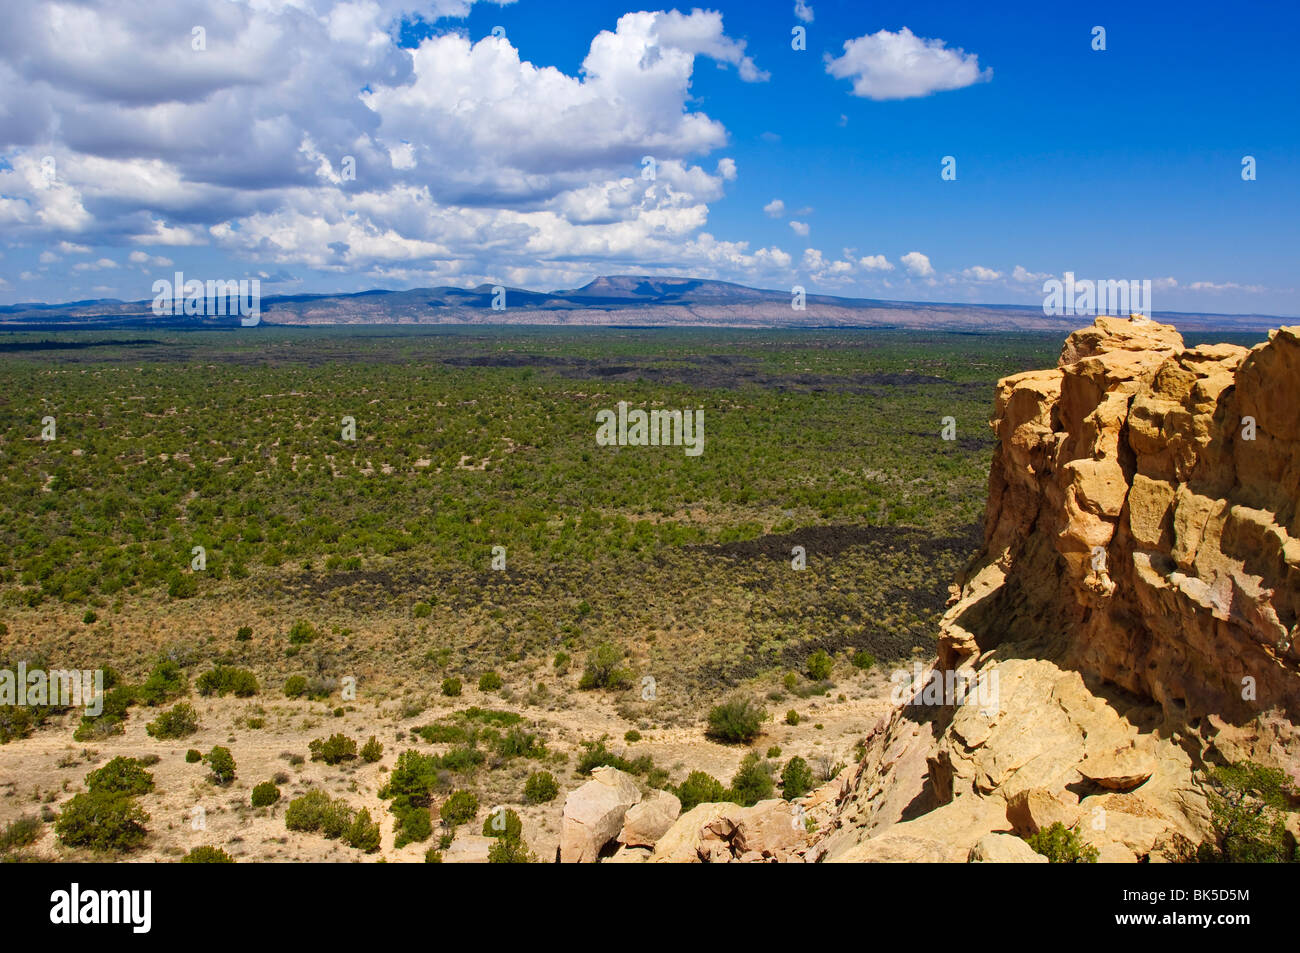 Escarpment and lava beds in El Malpais National Monument, New Mexico, United States of America, North America - Stock Image